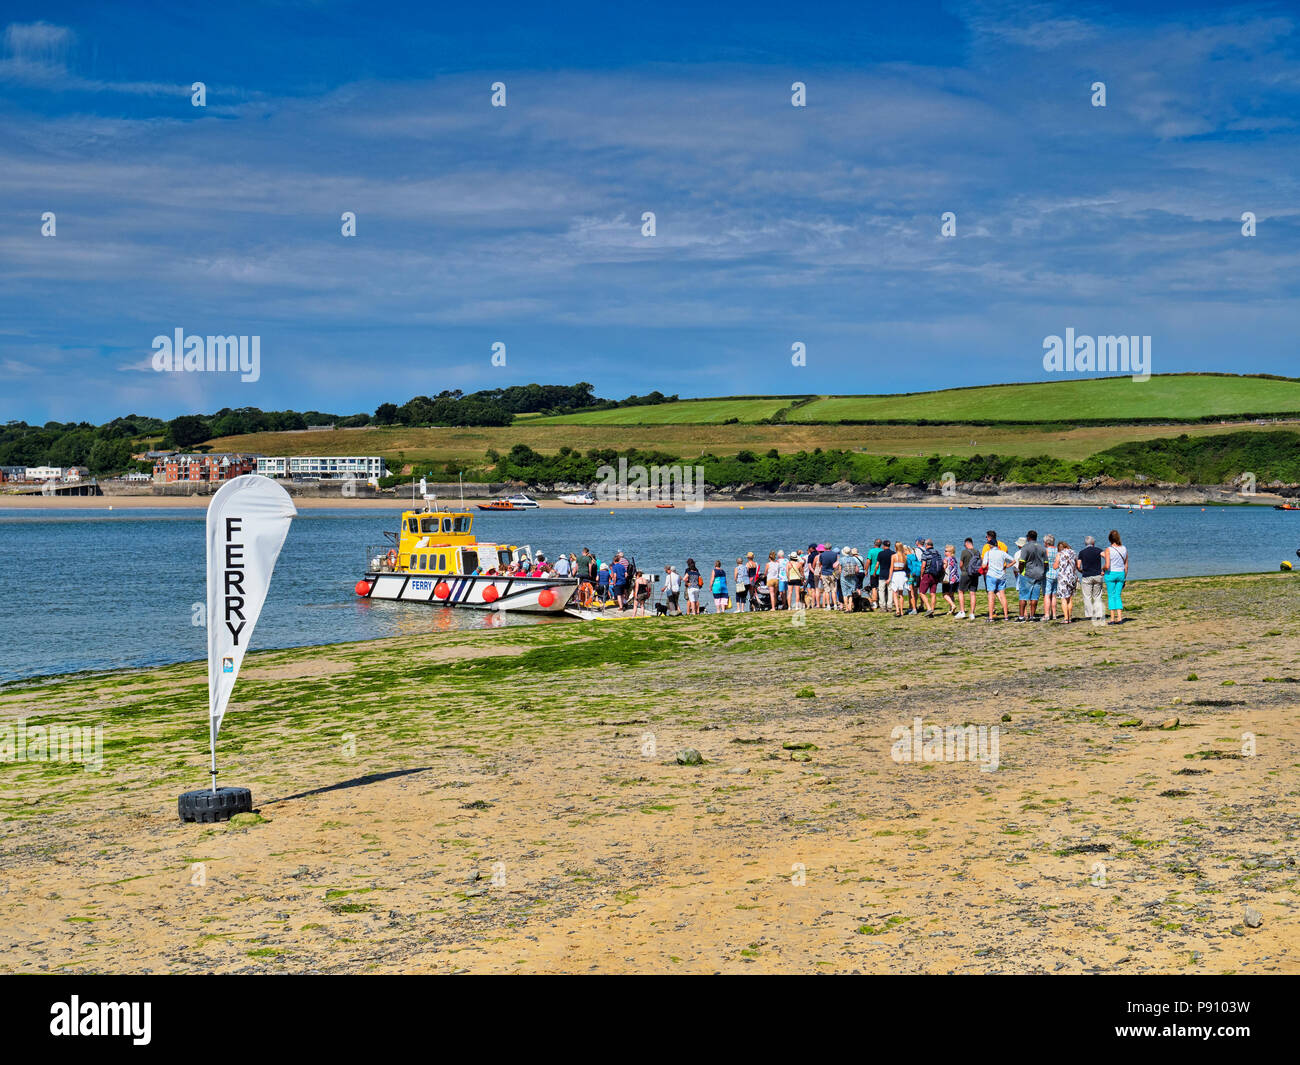 26 June 2018: Rock, Cornwall, UK - Queue of people waiting for the ferry to Padstow. - Stock Image